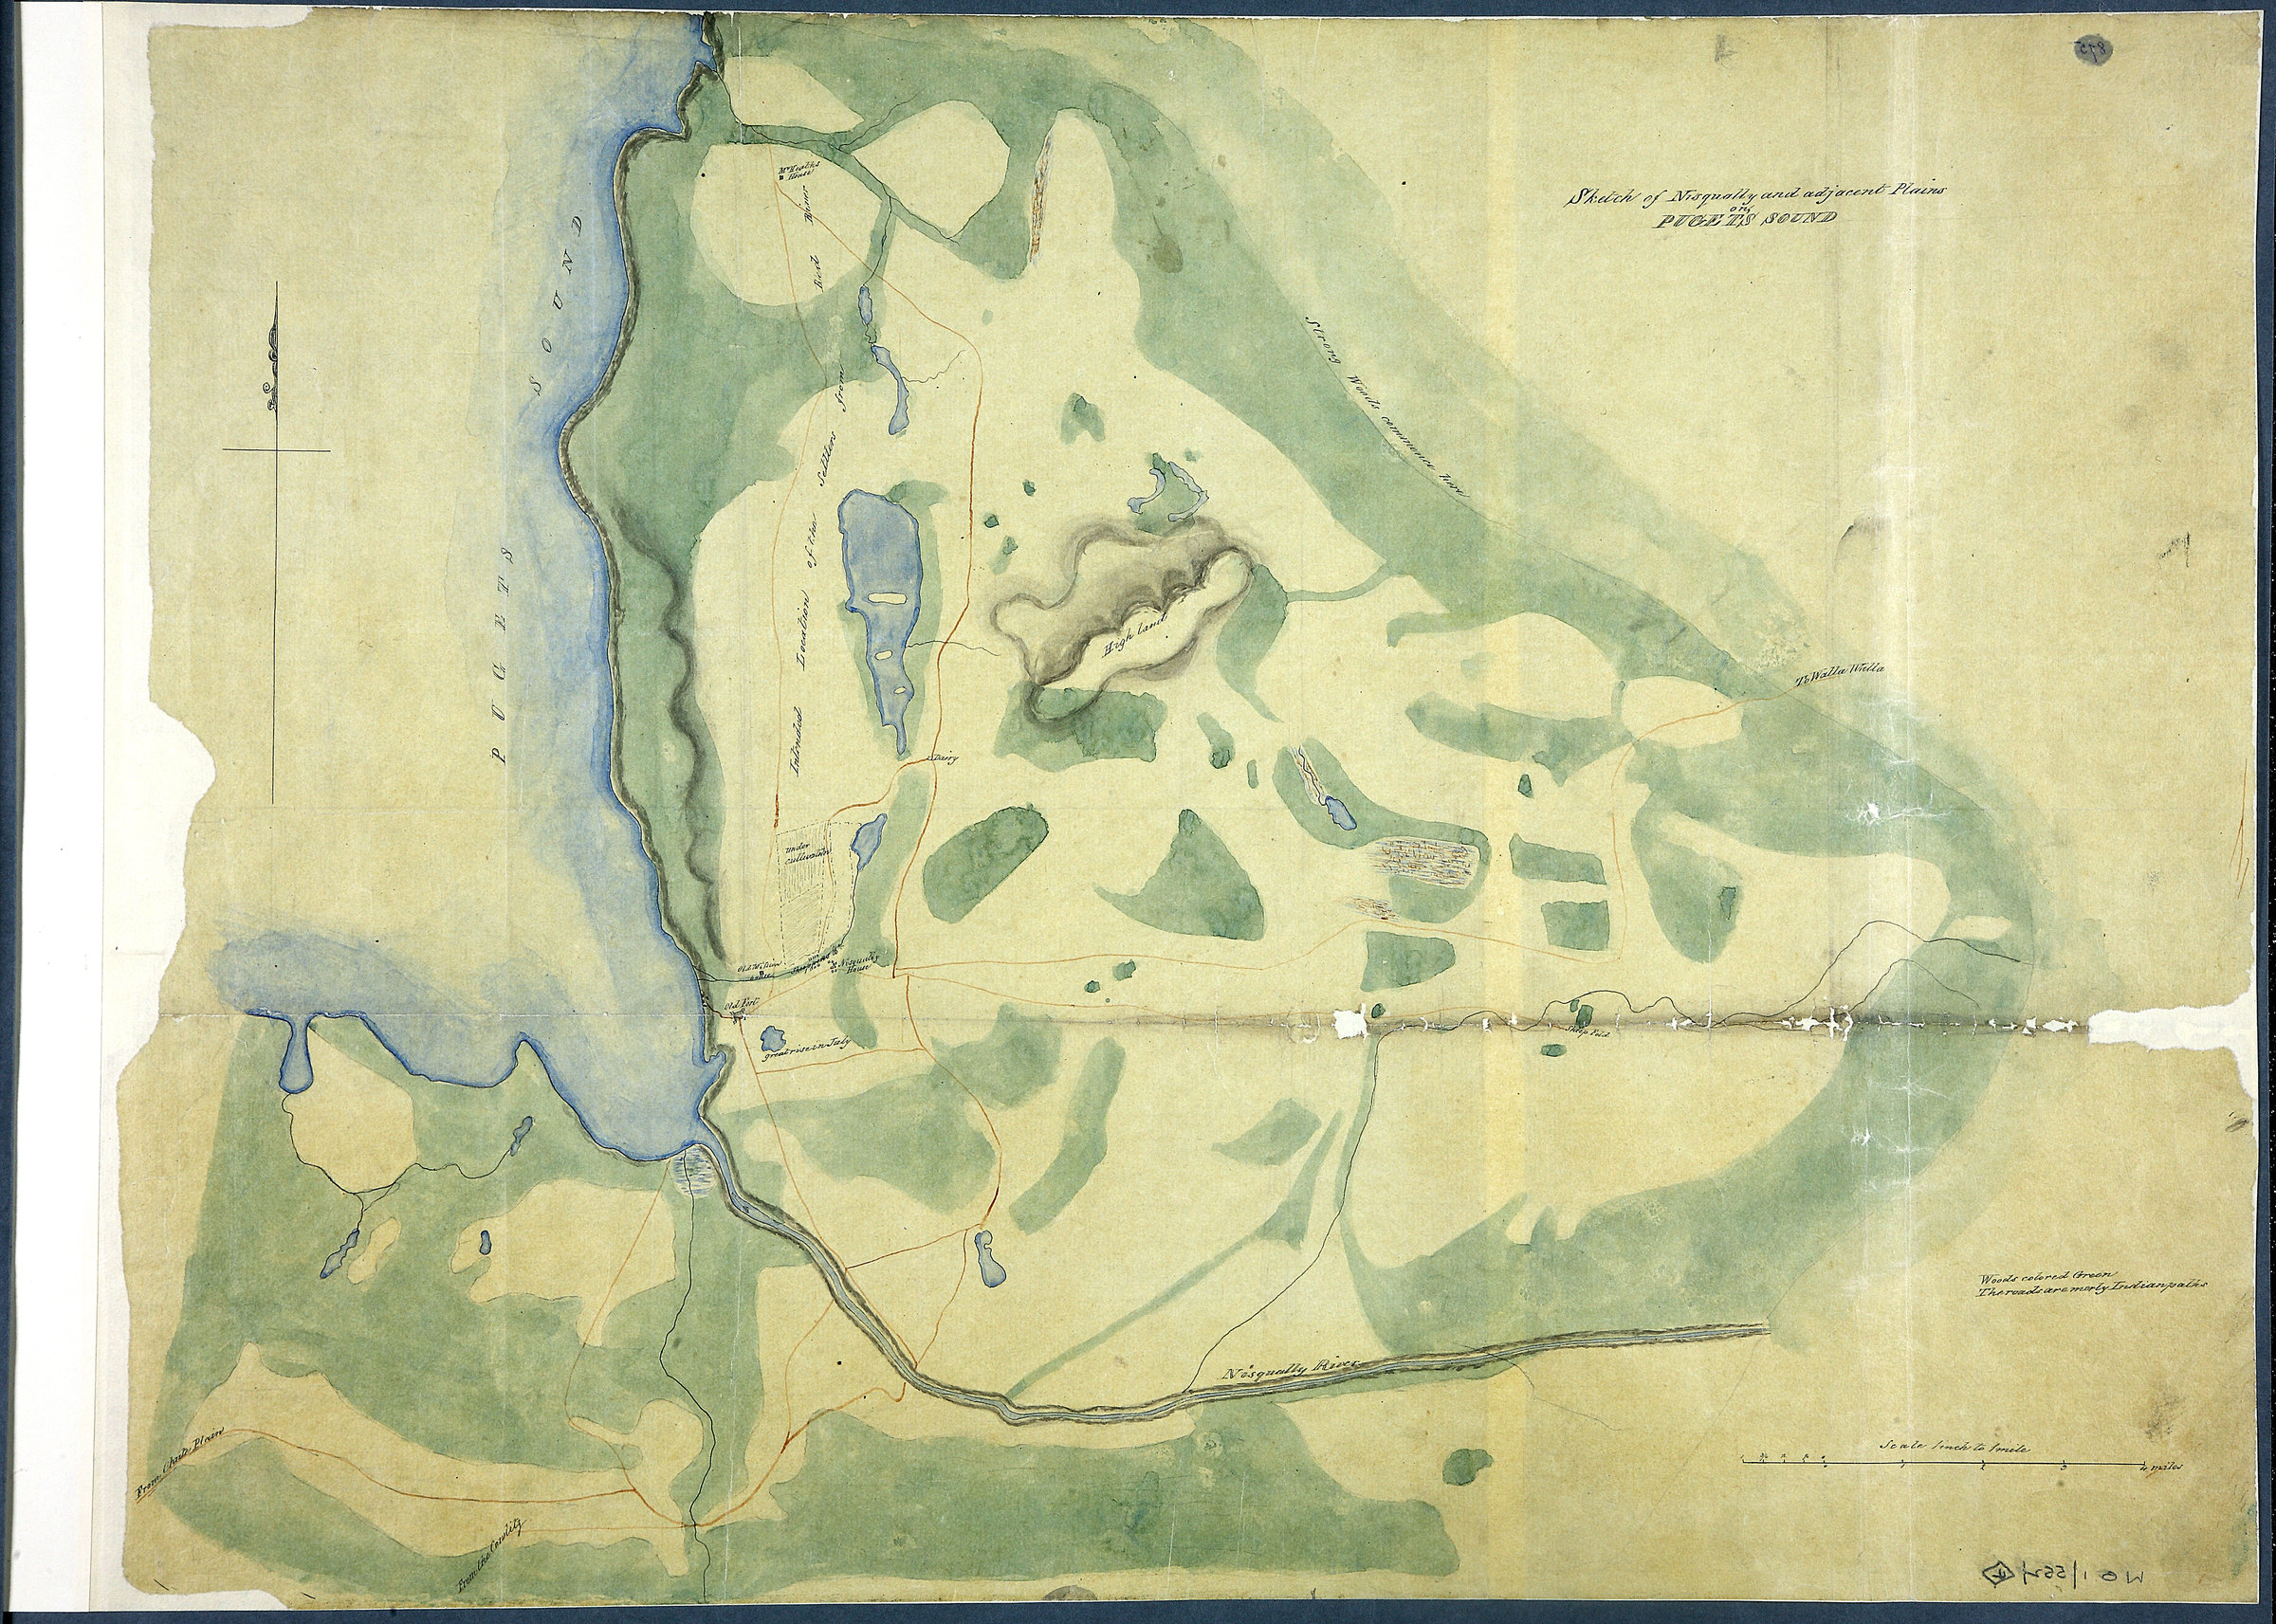 Sketch of Nisqually and adjacent Plains on Puget's Sound.